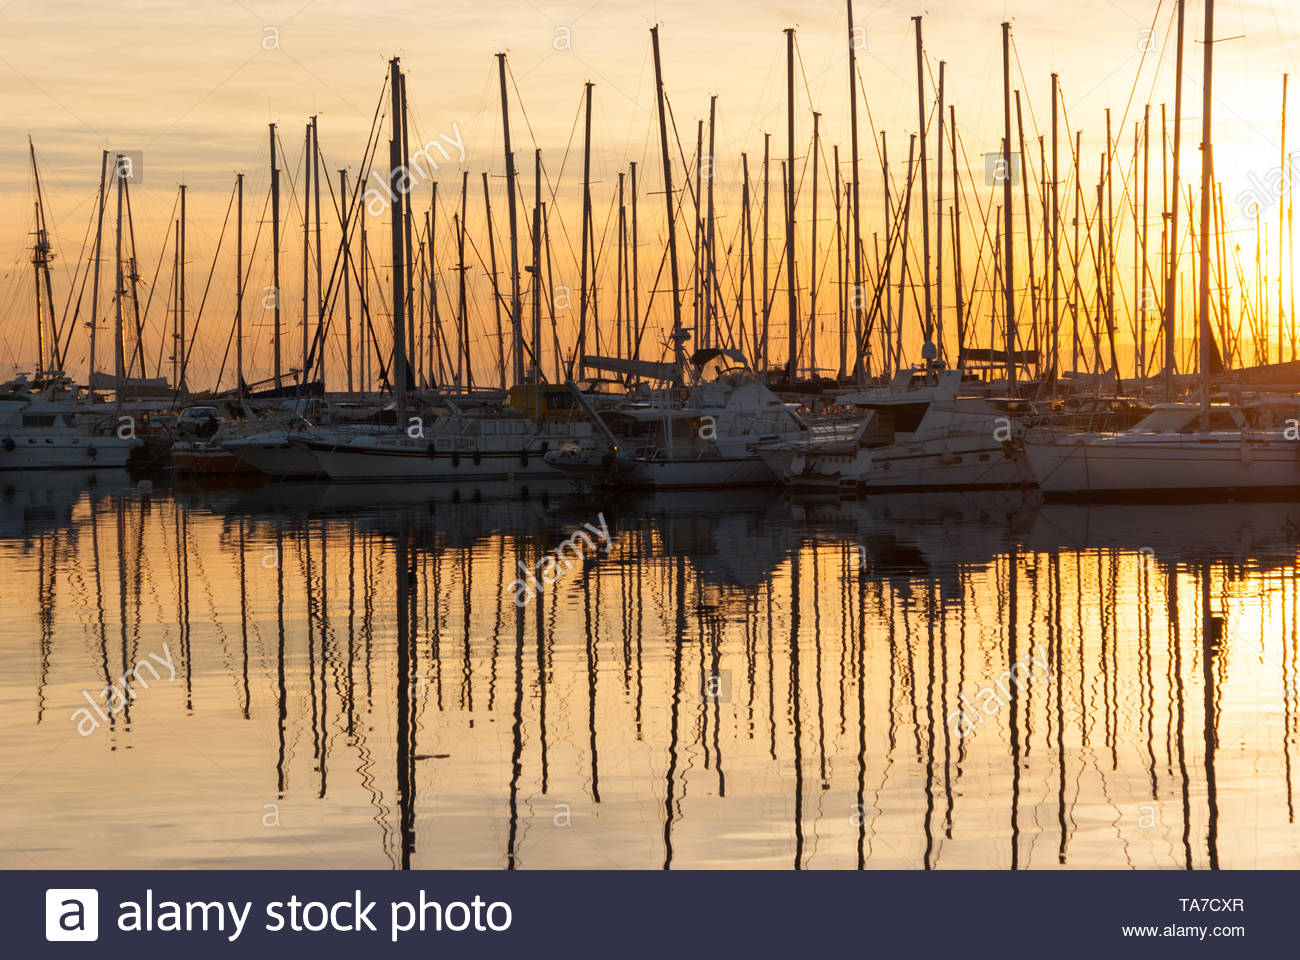 Docked Sailboats at Marina in Alimos, Athens, Greece during the sunset Stock Photo